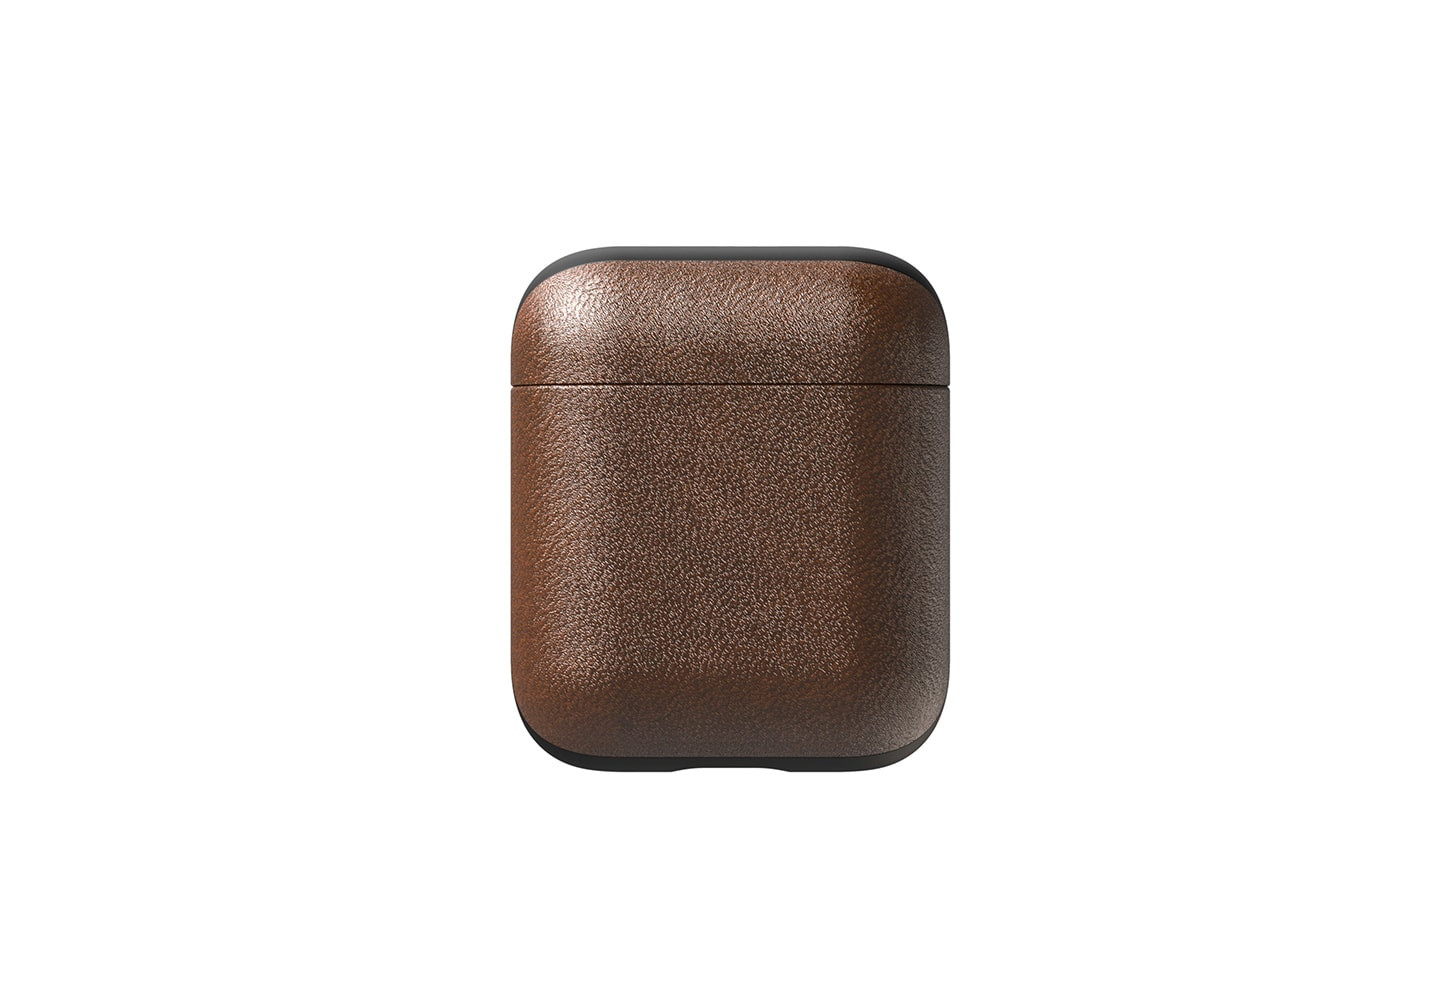 nomad-airpods-case-brown-2.jpg